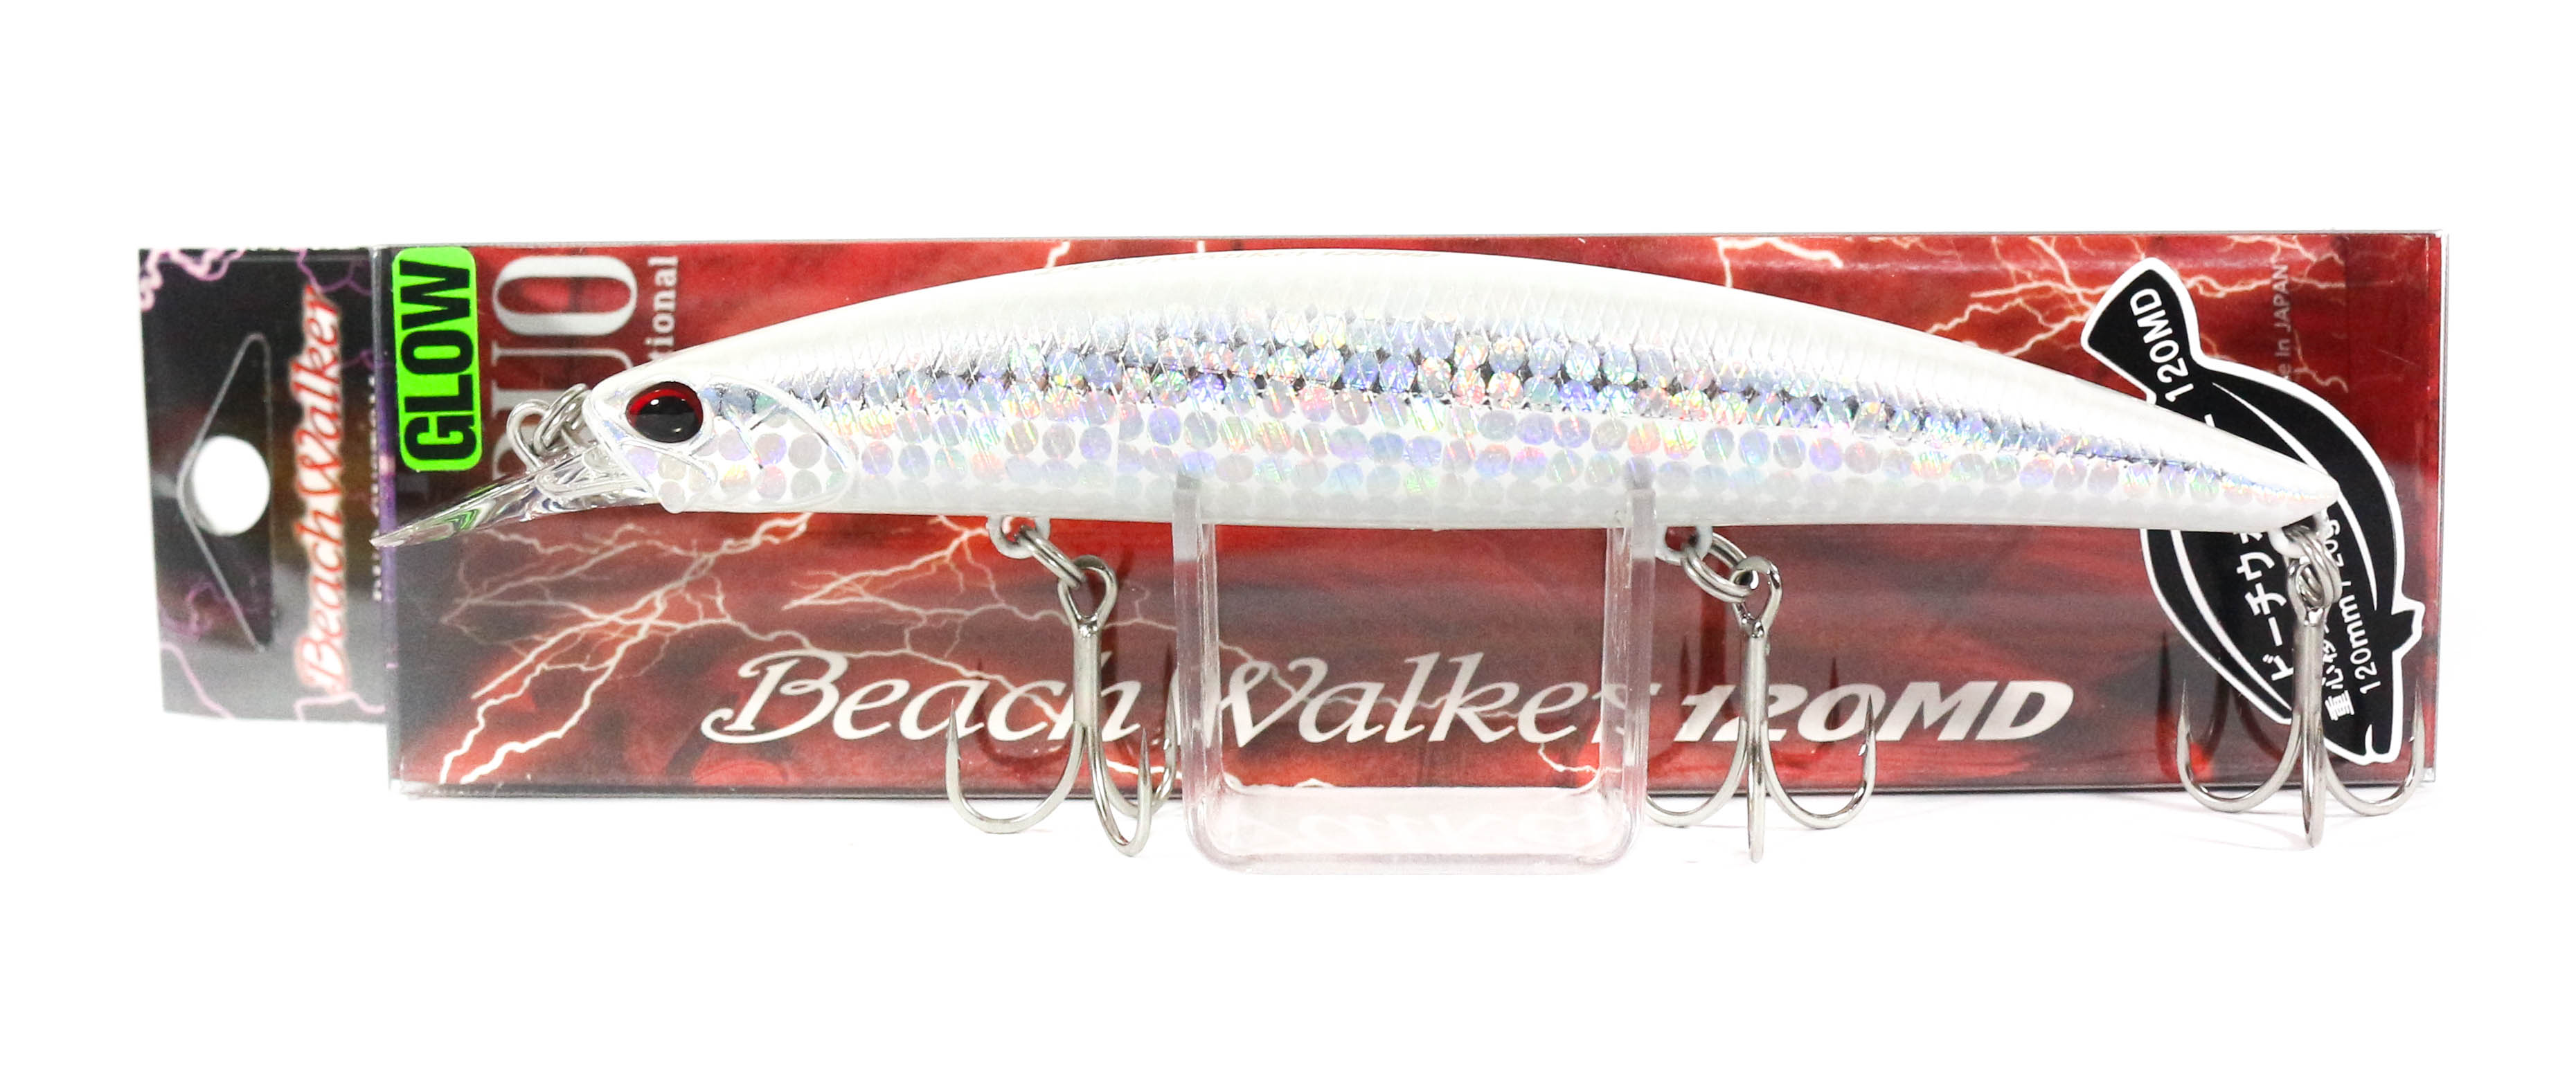 Duo Beach Walker 120 MD Sinking Lure AQA0111 (3877)